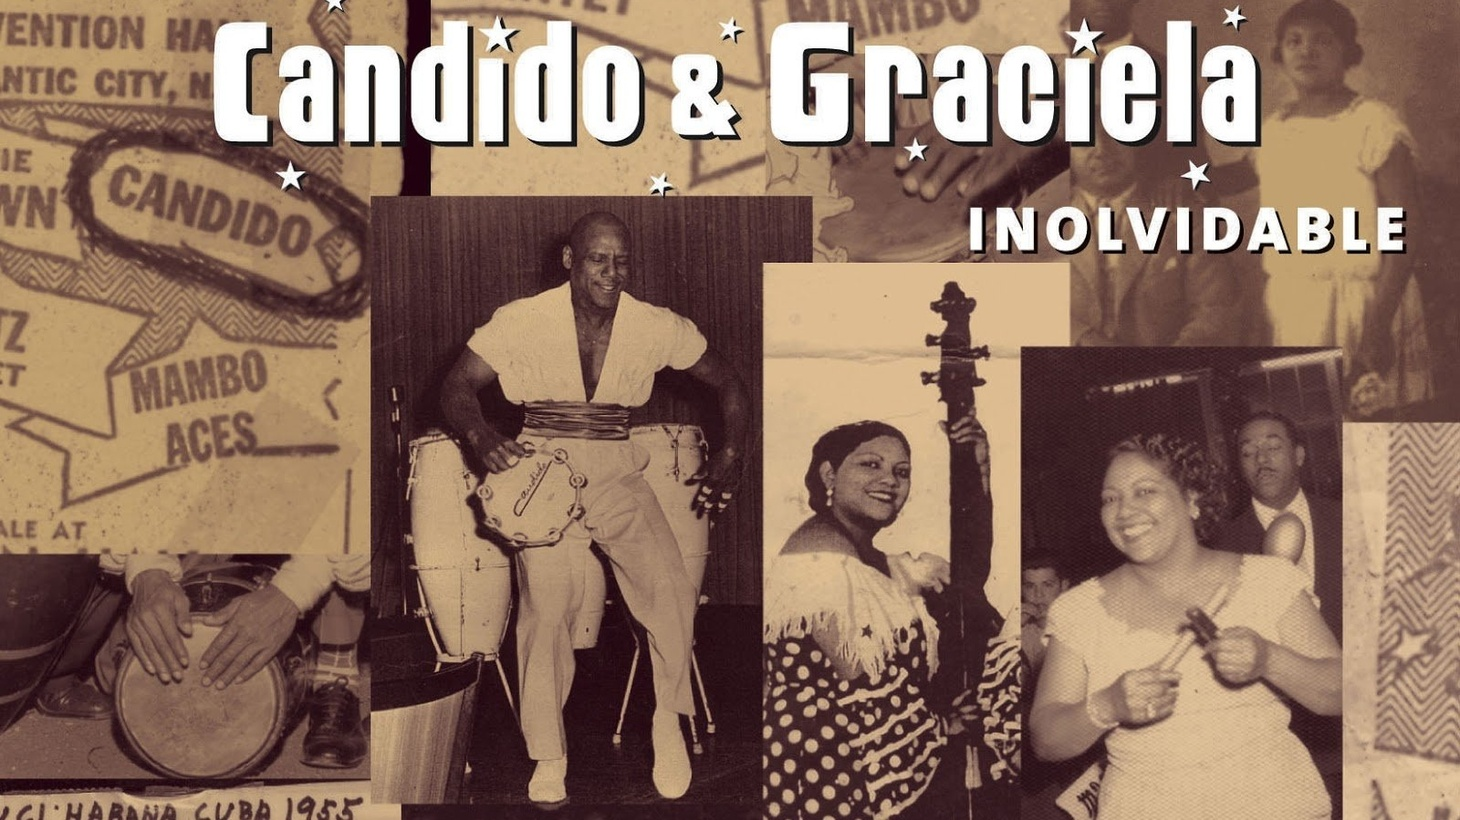 Cuban legends Candido & Graciela recorded their 2004 album Inolvidable when they were 82 and 88, respectively